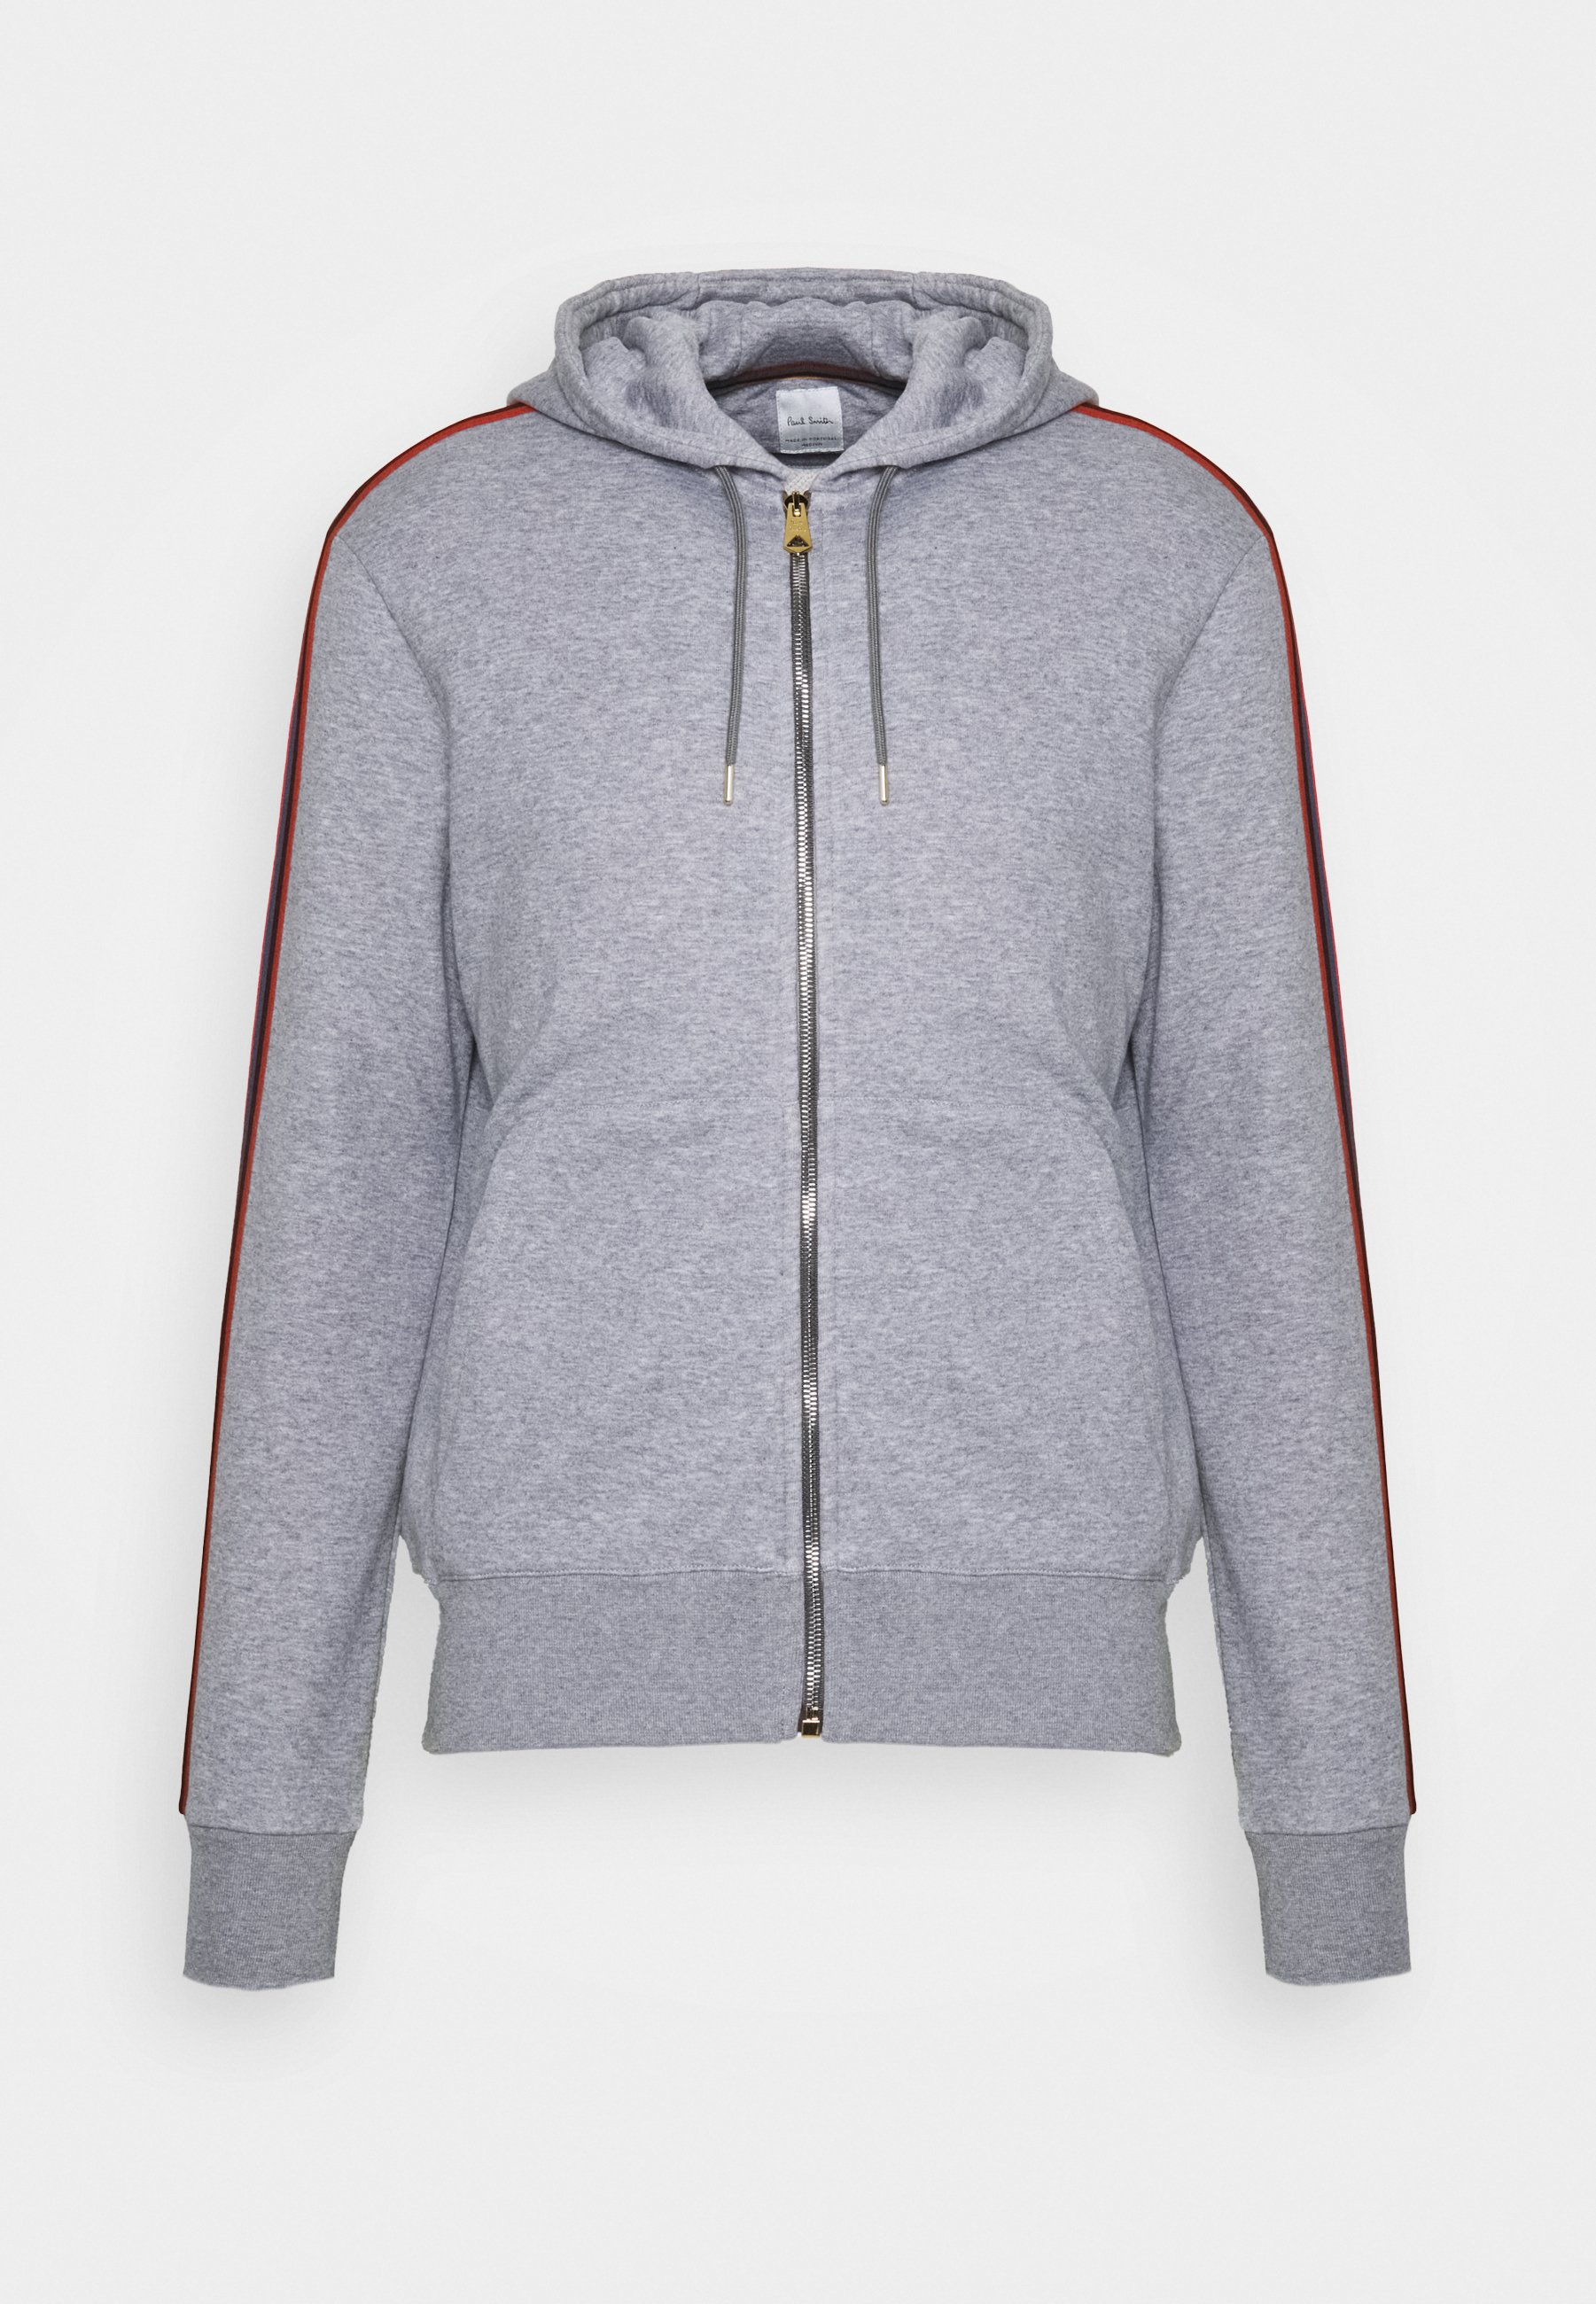 GENTS ZIP THROUGH TAPED SEAMS HOODY Sweatjakke Træningstrøjer mottled grey